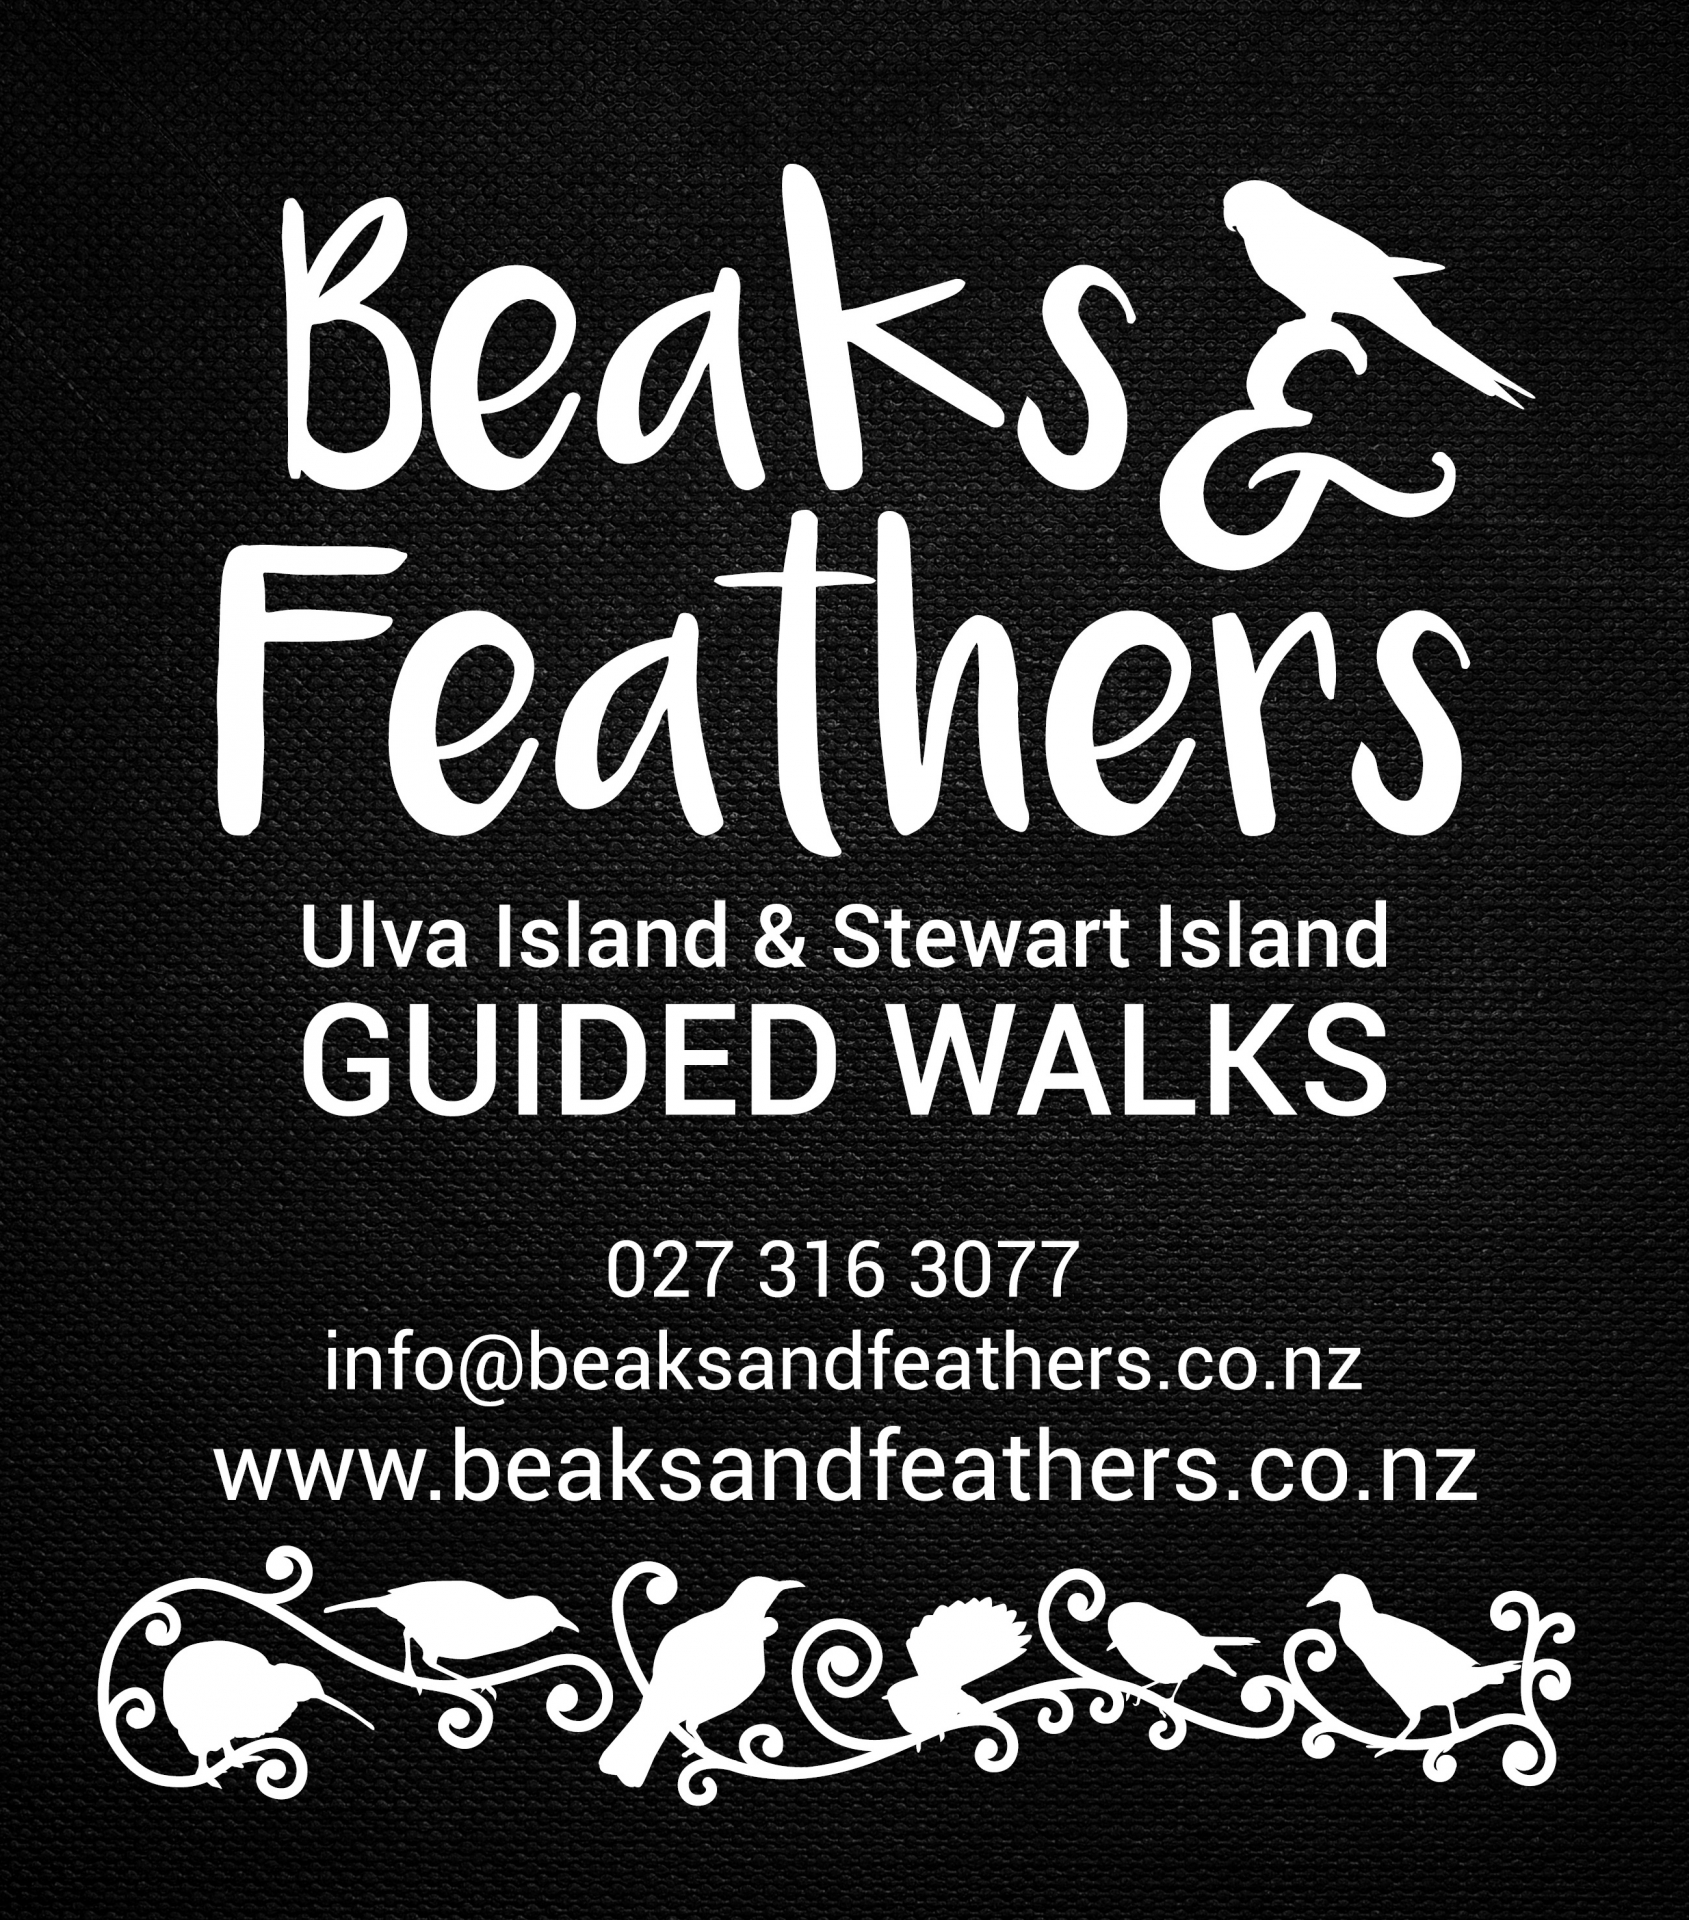 Beaks and Feathers logo